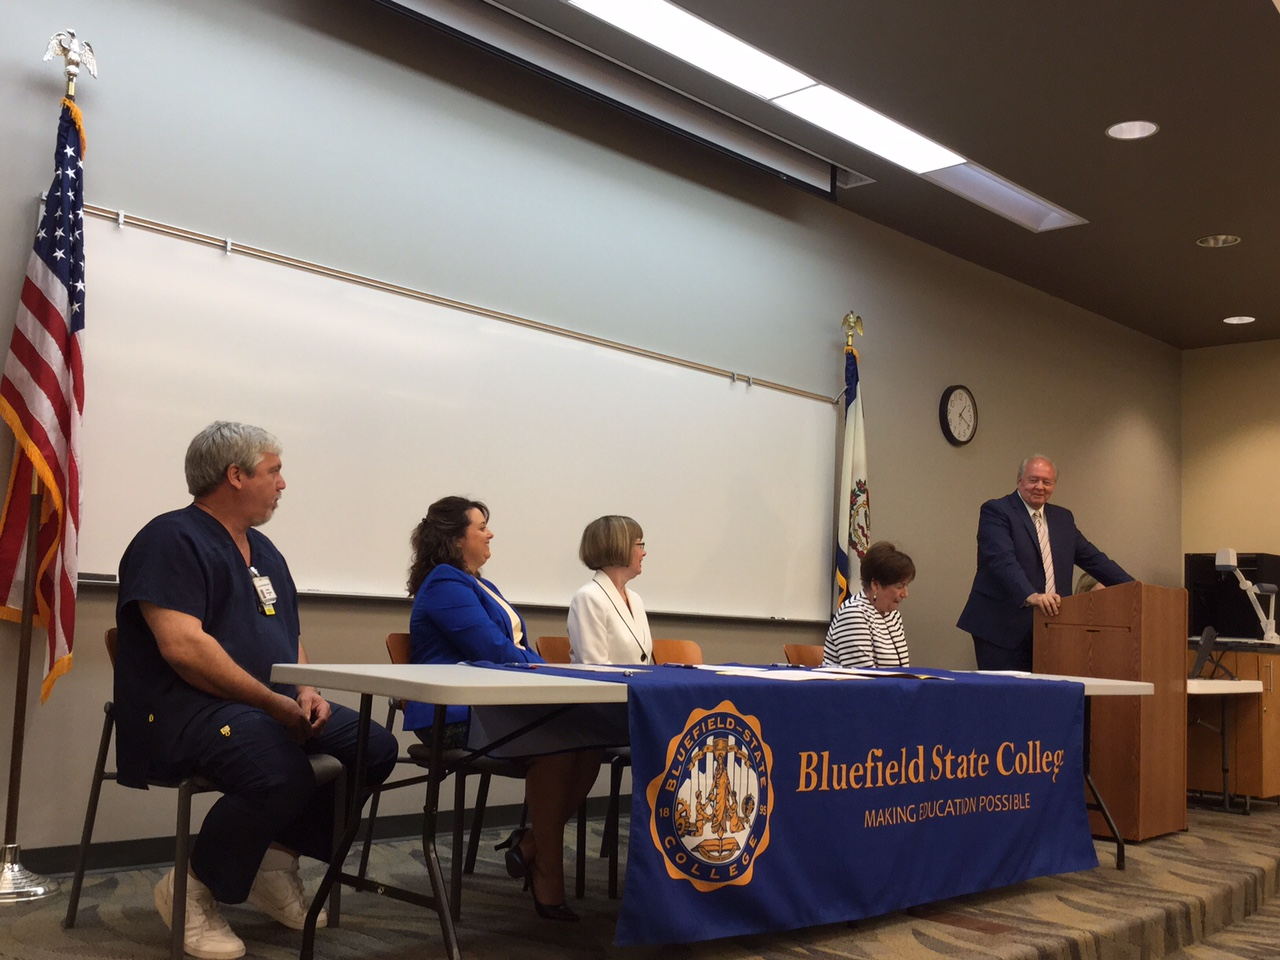 Nursing program at Bluefield State